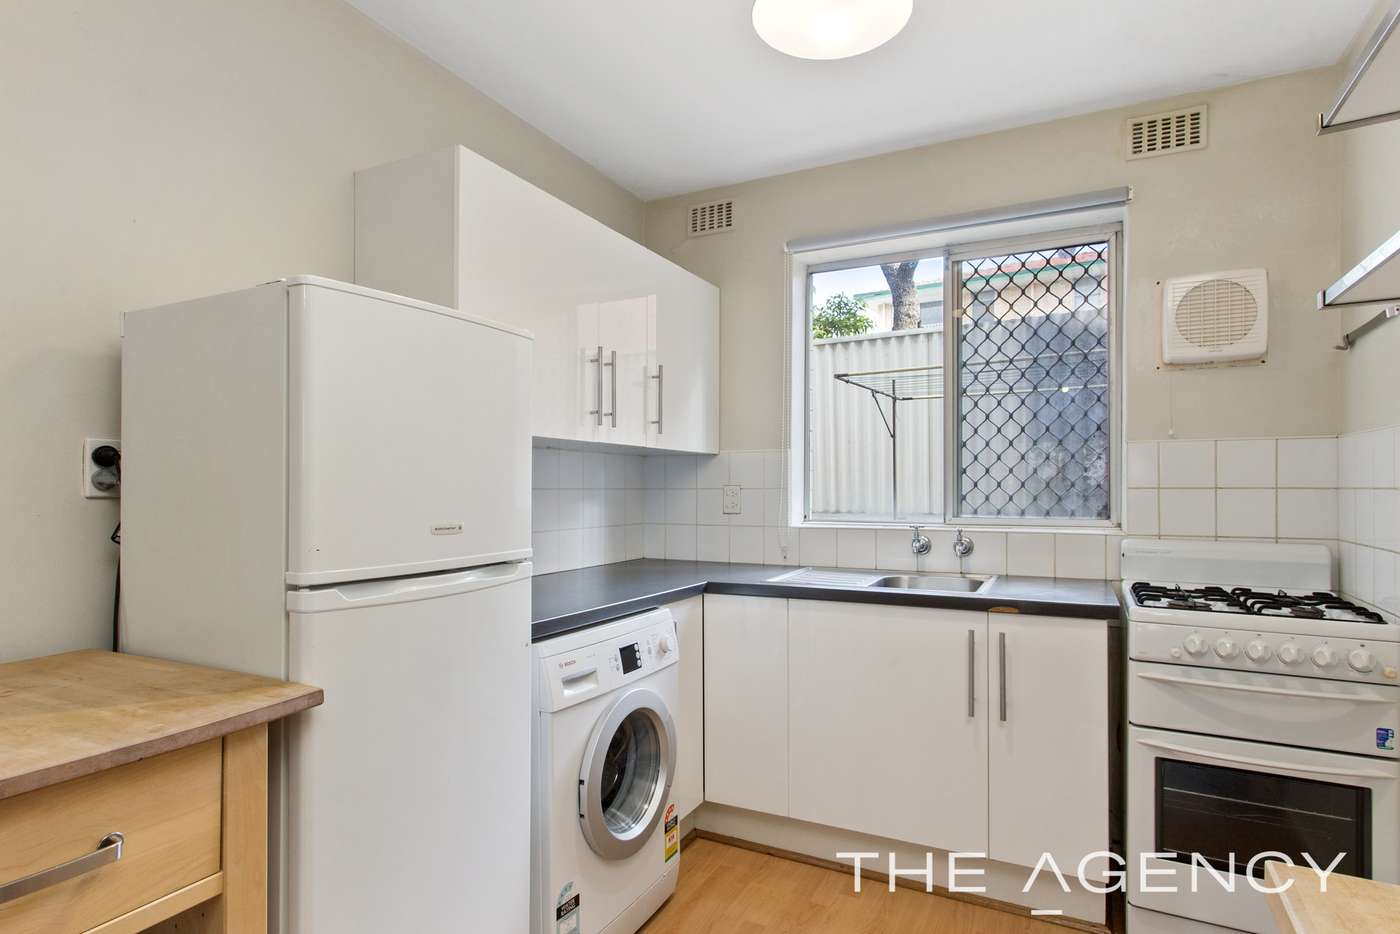 Sixth view of Homely unit listing, 2/746 Beaufort Street, Mount Lawley WA 6050